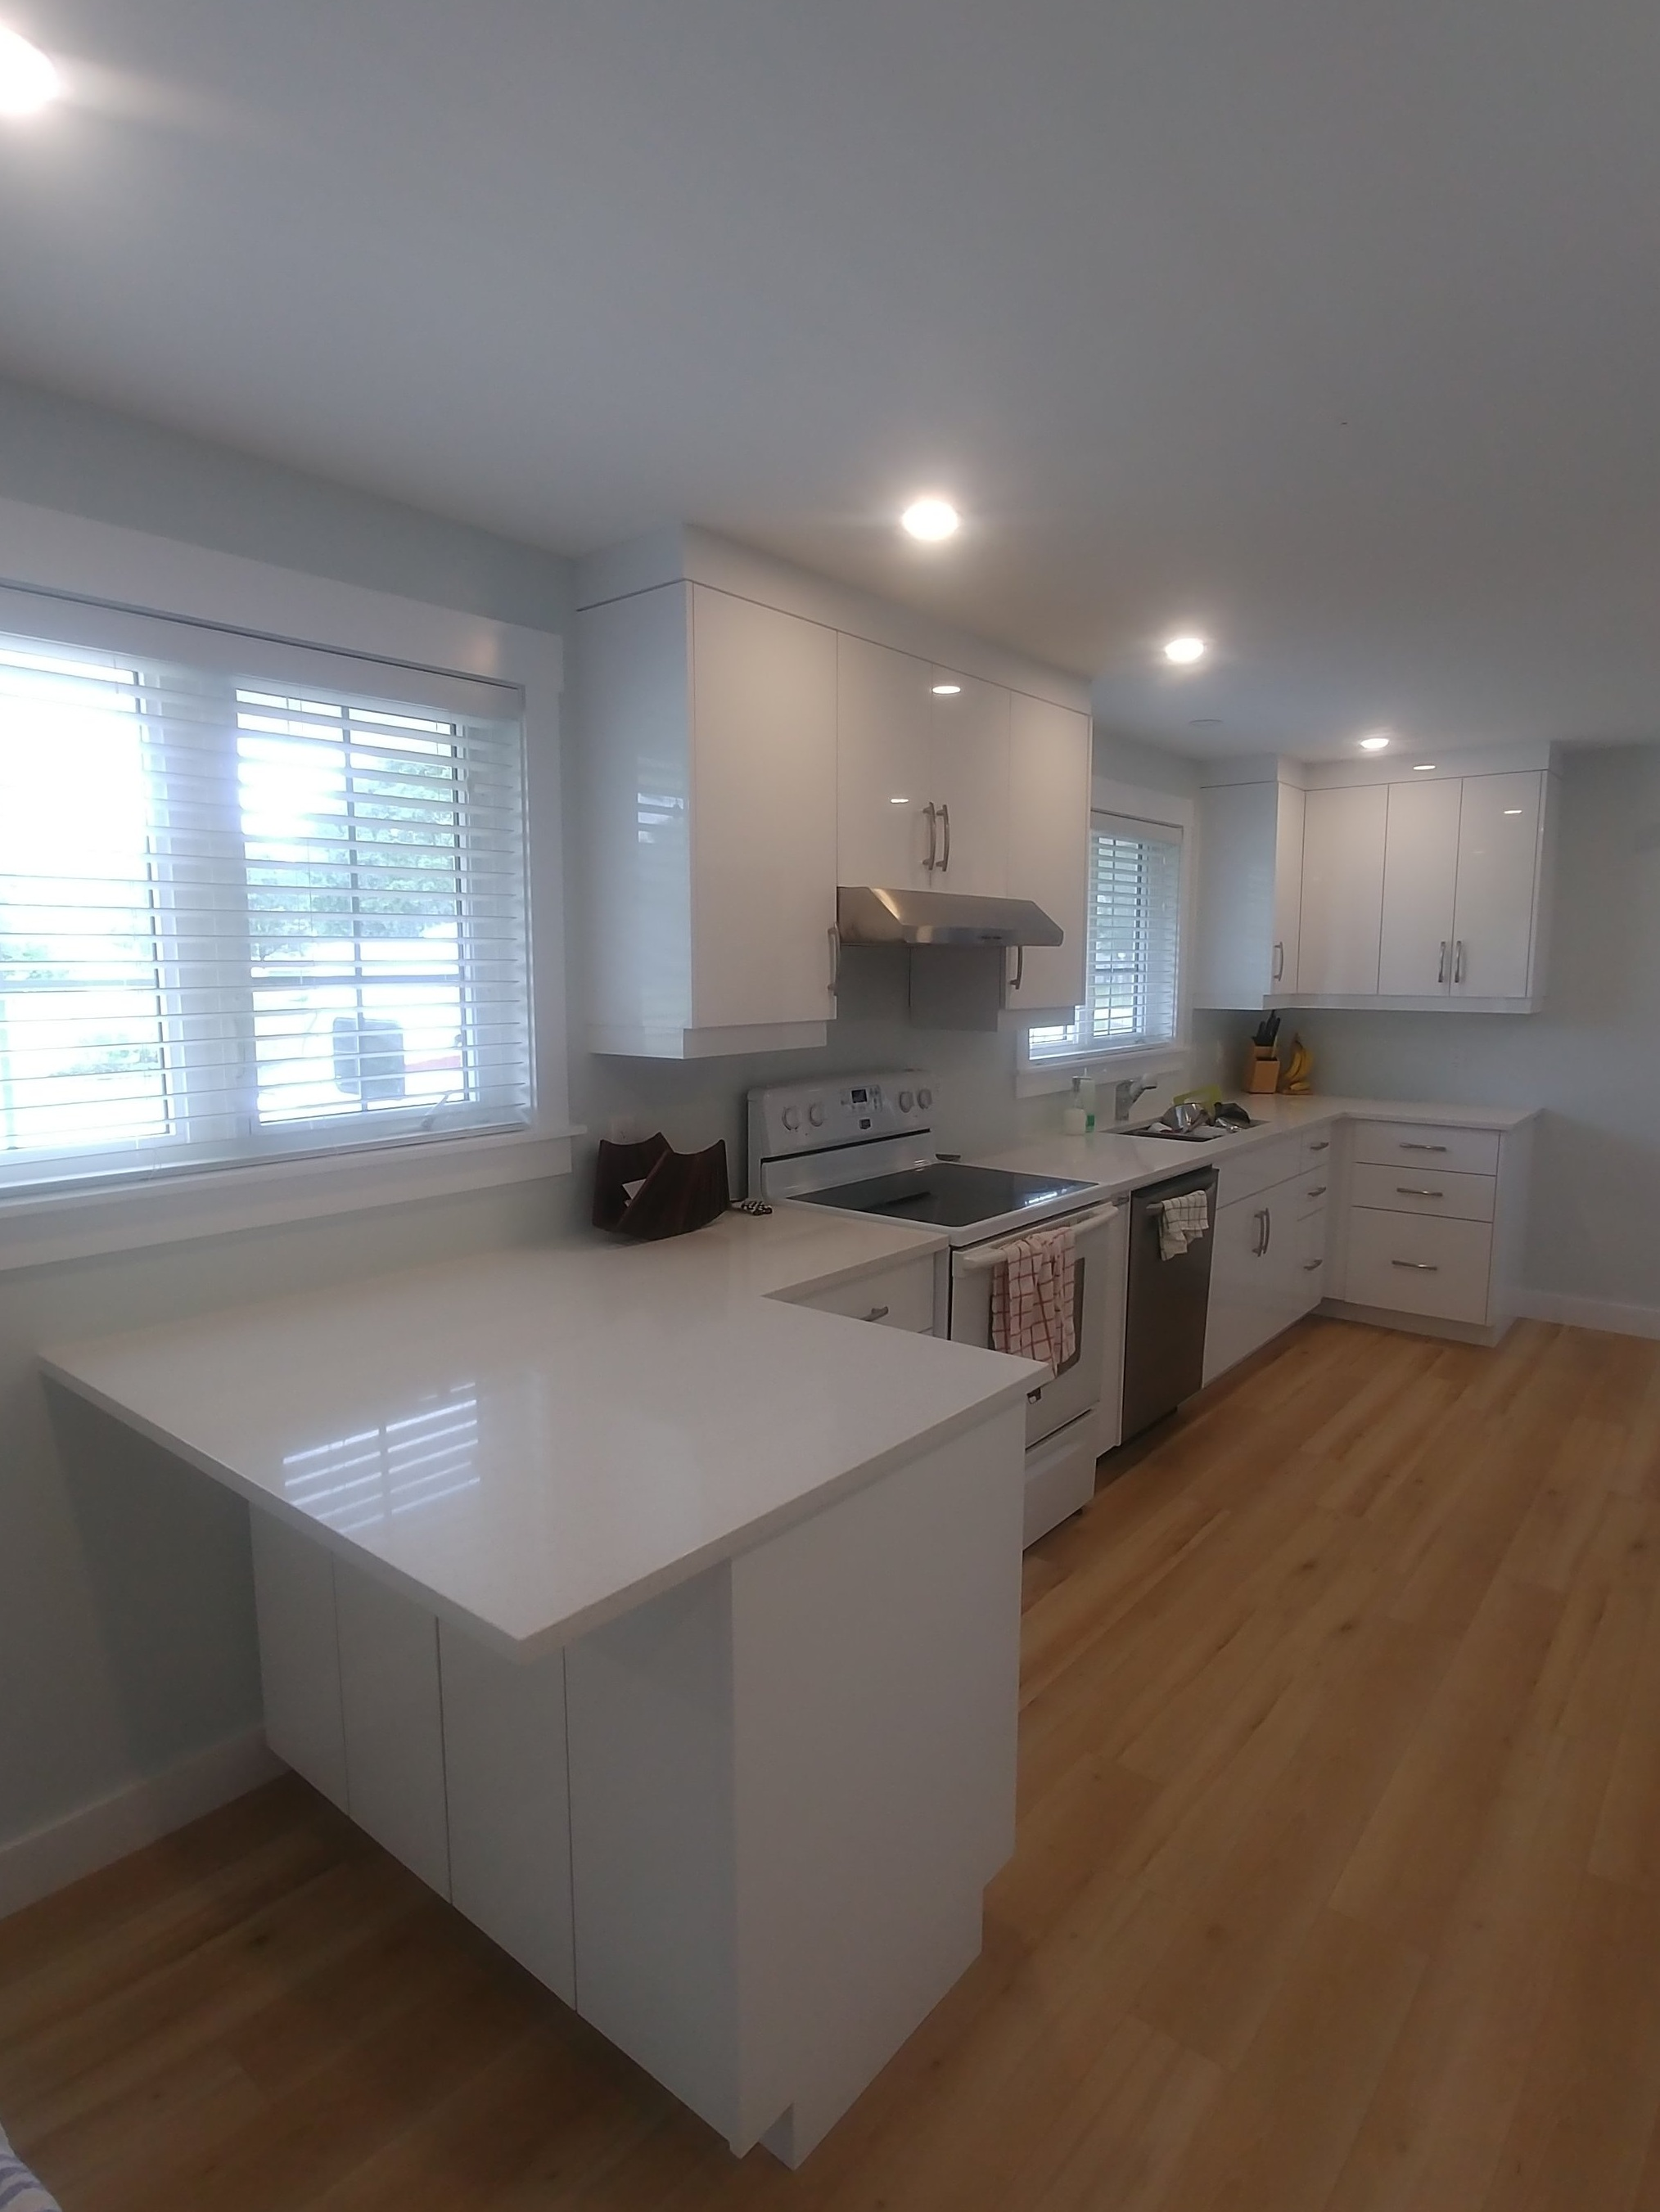 High gloss white panel doors and Blanco Maple quartz counter-top